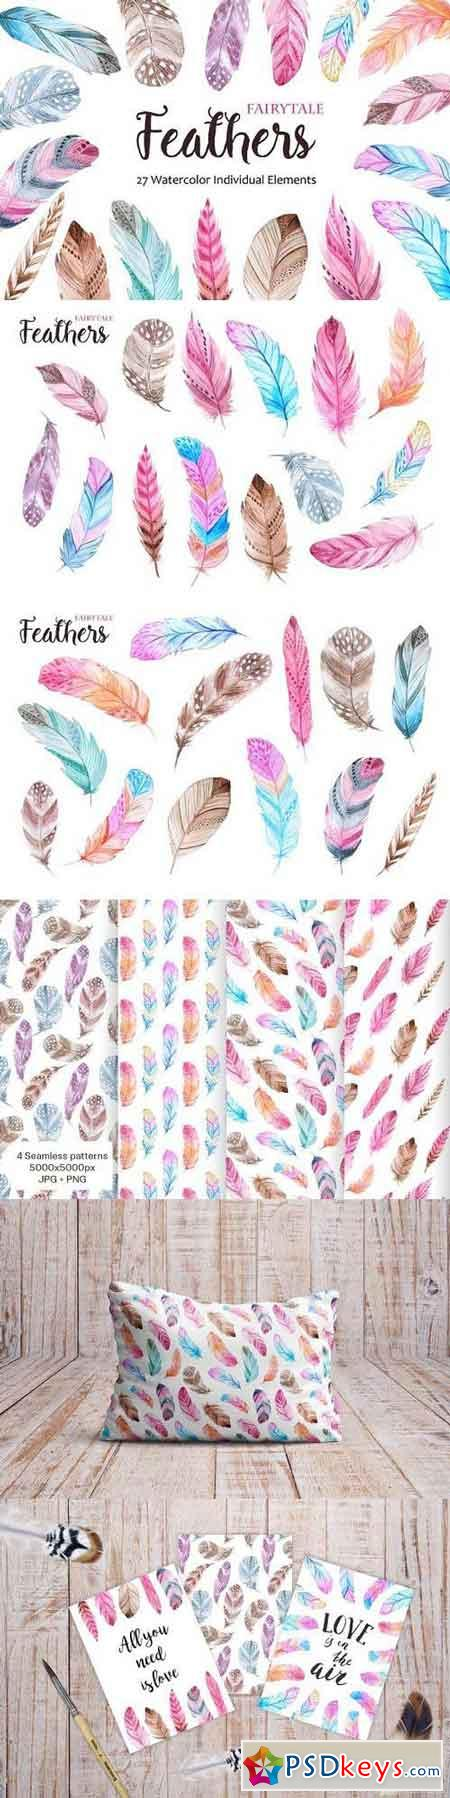 Watercolor Fairytale Feathers Set 1172147